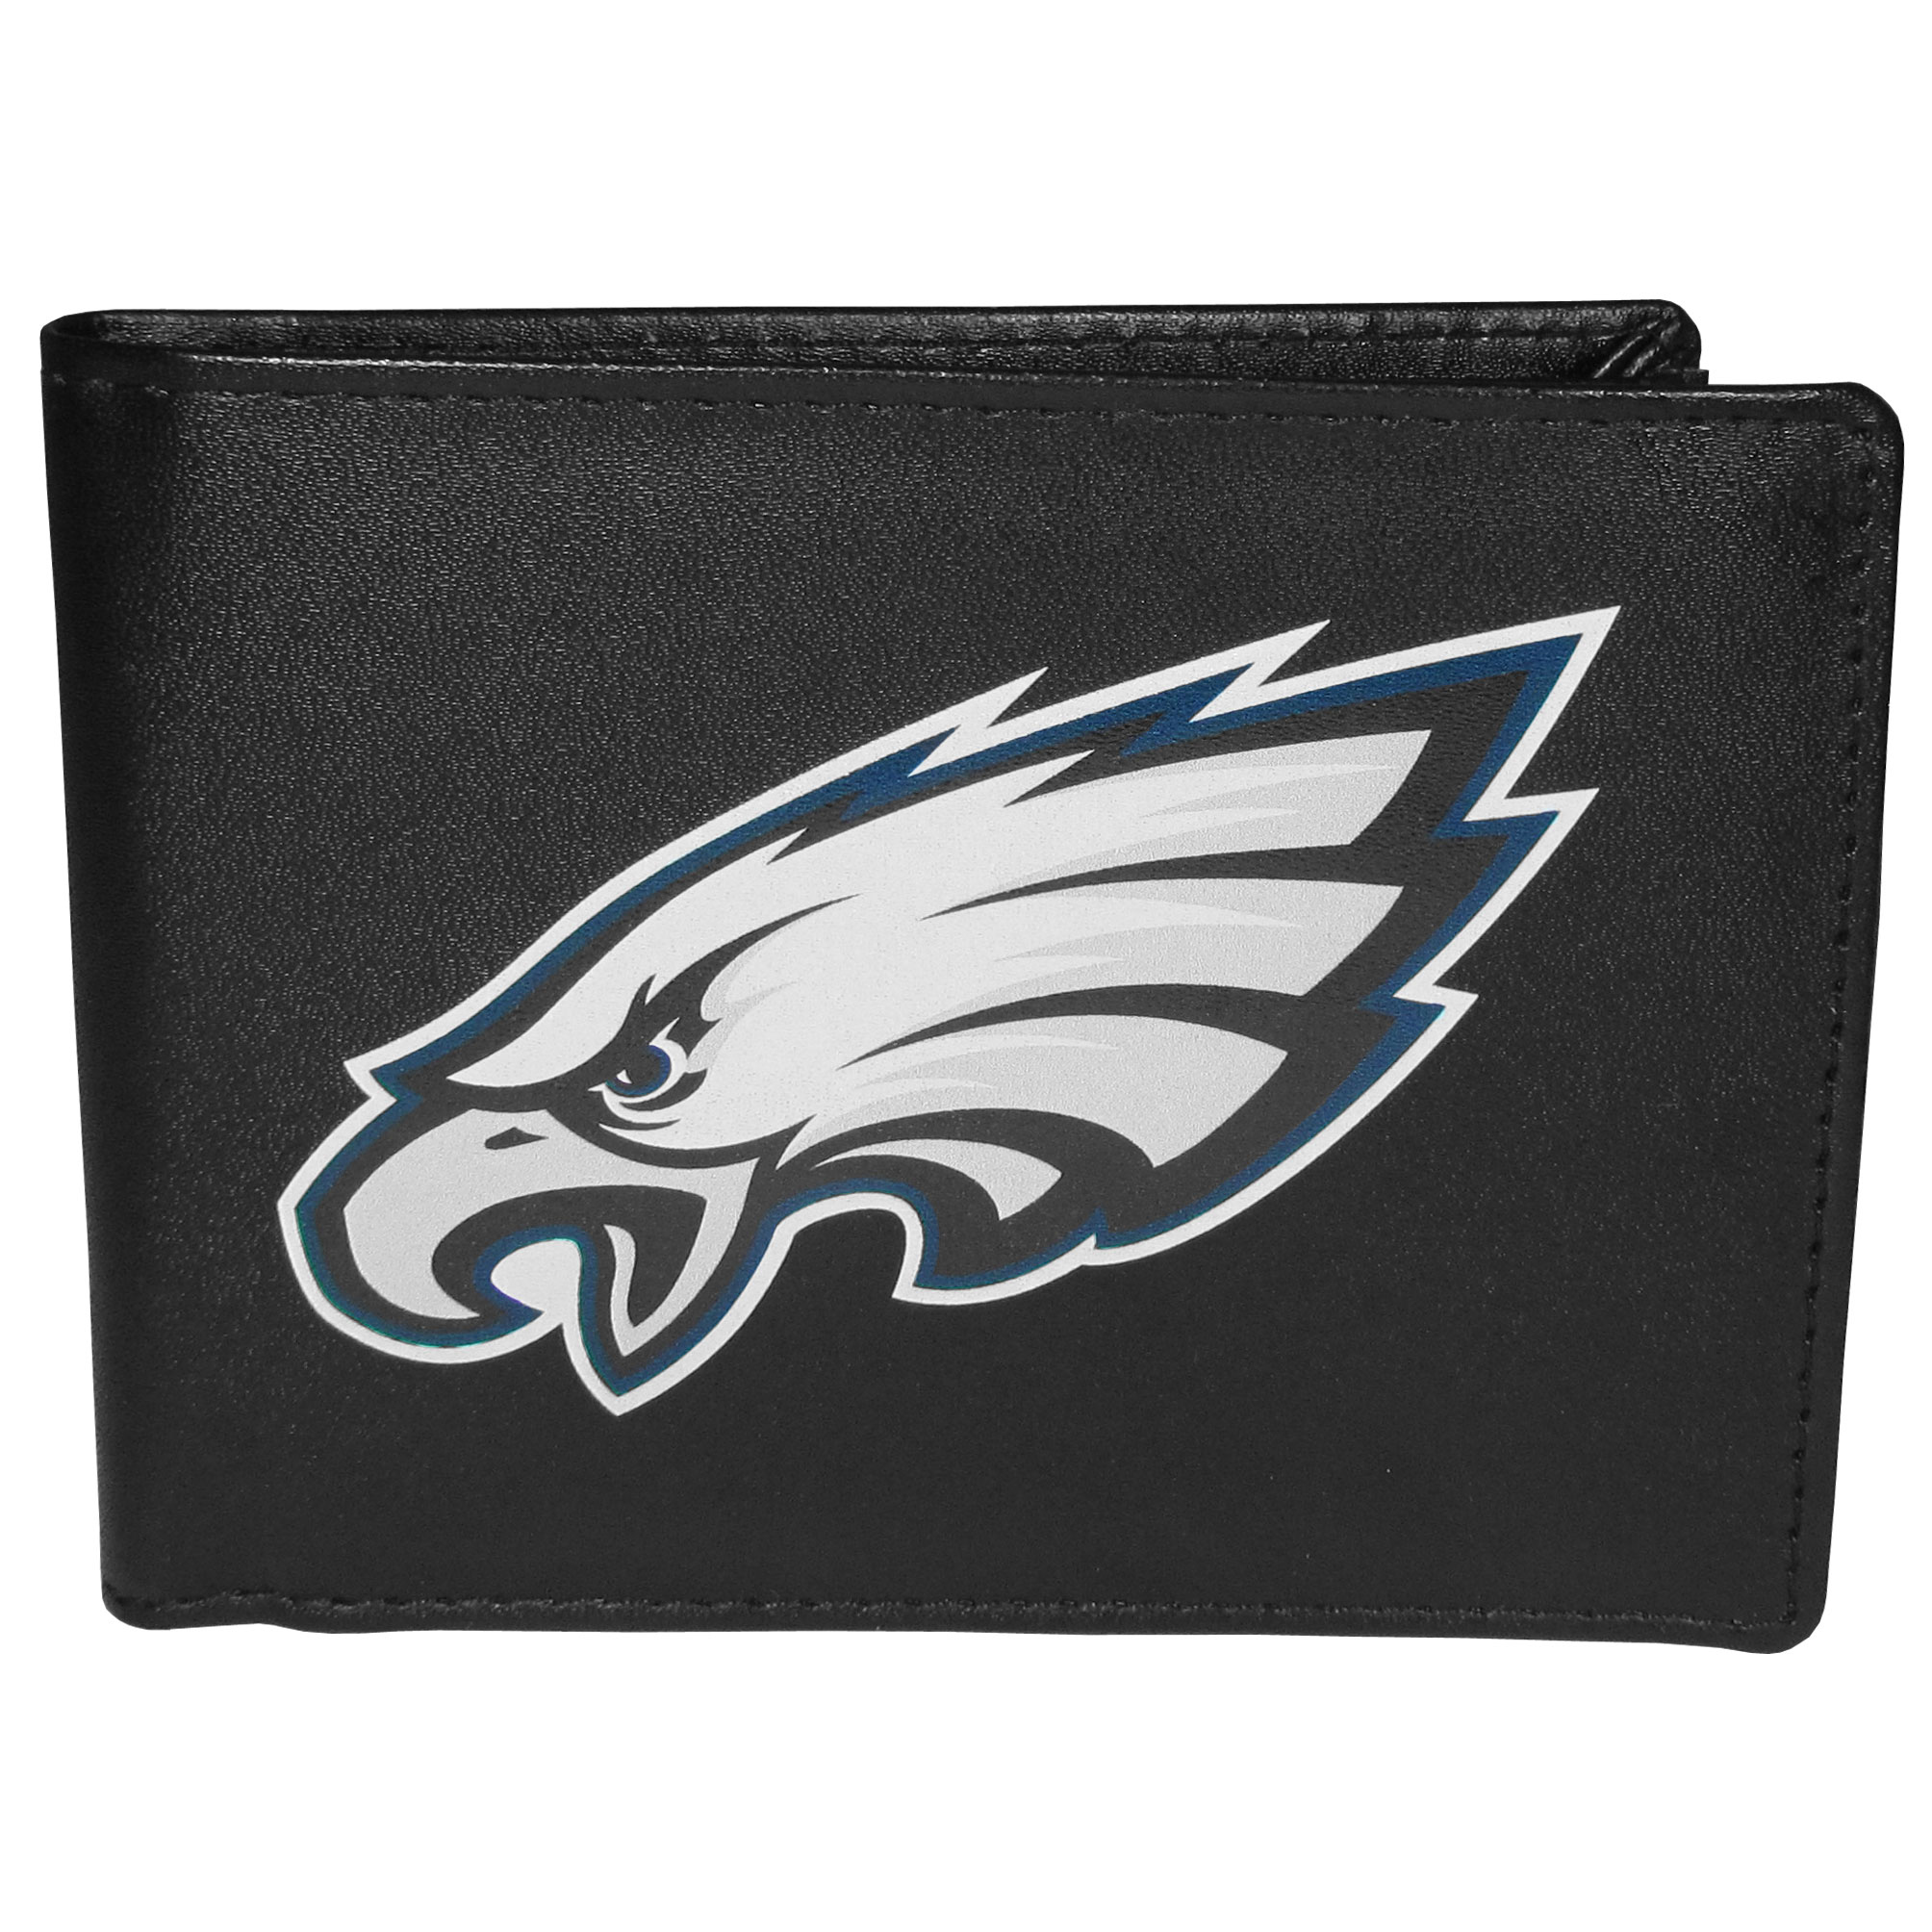 Philadelphia Eagles Leather Bi-fold Wallet, Large Logo - Our classic fine leather bi-fold wallet is meticulously crafted with genuine leather that will age beautifully so you will have a quality wallet for years to come. The wallet opens to a large, billfold pocket and numerous credit card slots and has a convenient windowed ID slot. The front of the wallet features an extra large Philadelphia Eagles printed logo.